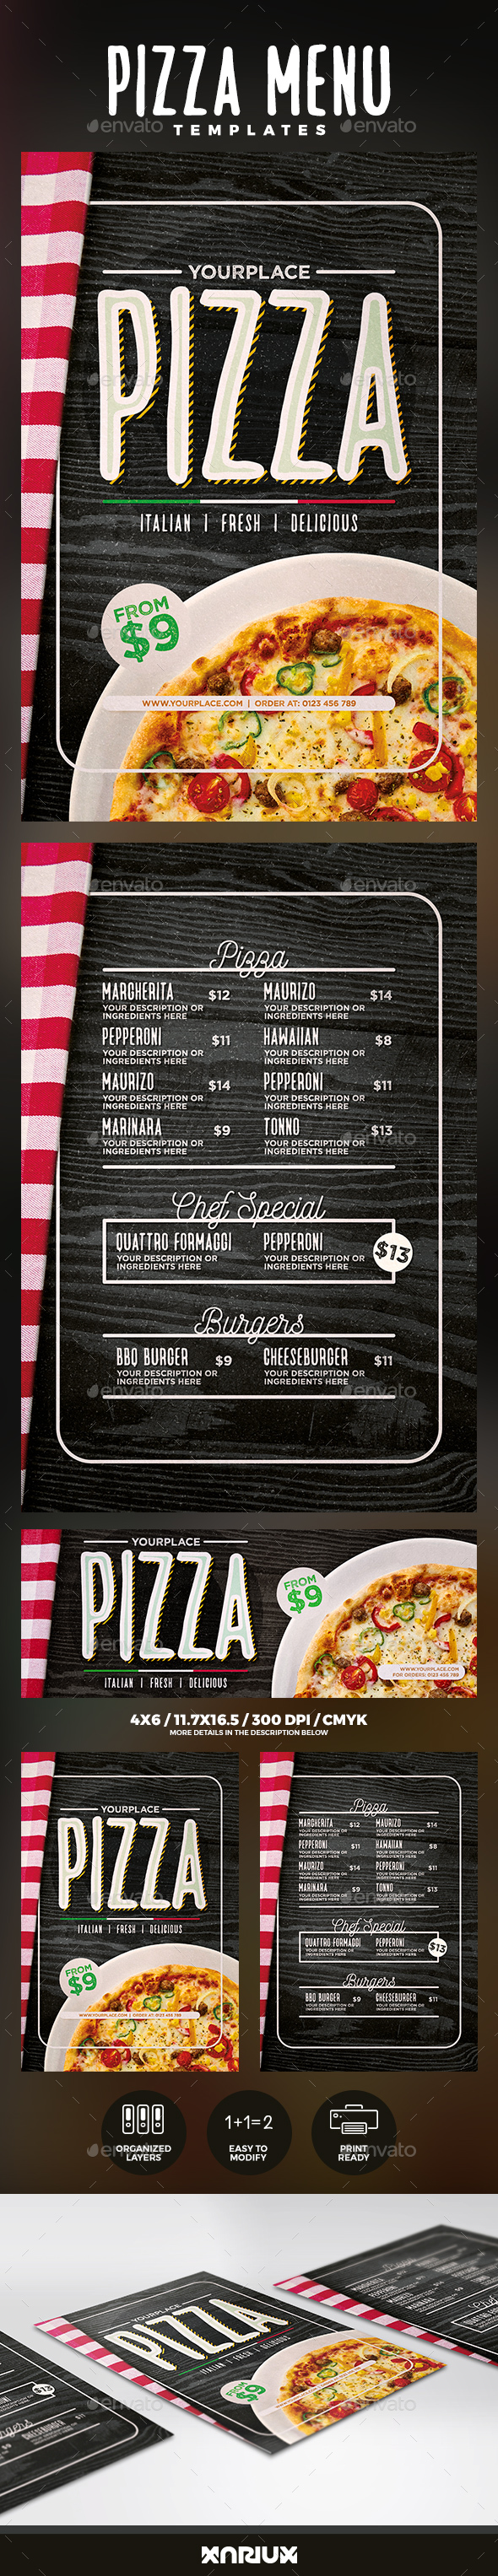 Pizza Menu Templates - Food Menus Print Templates